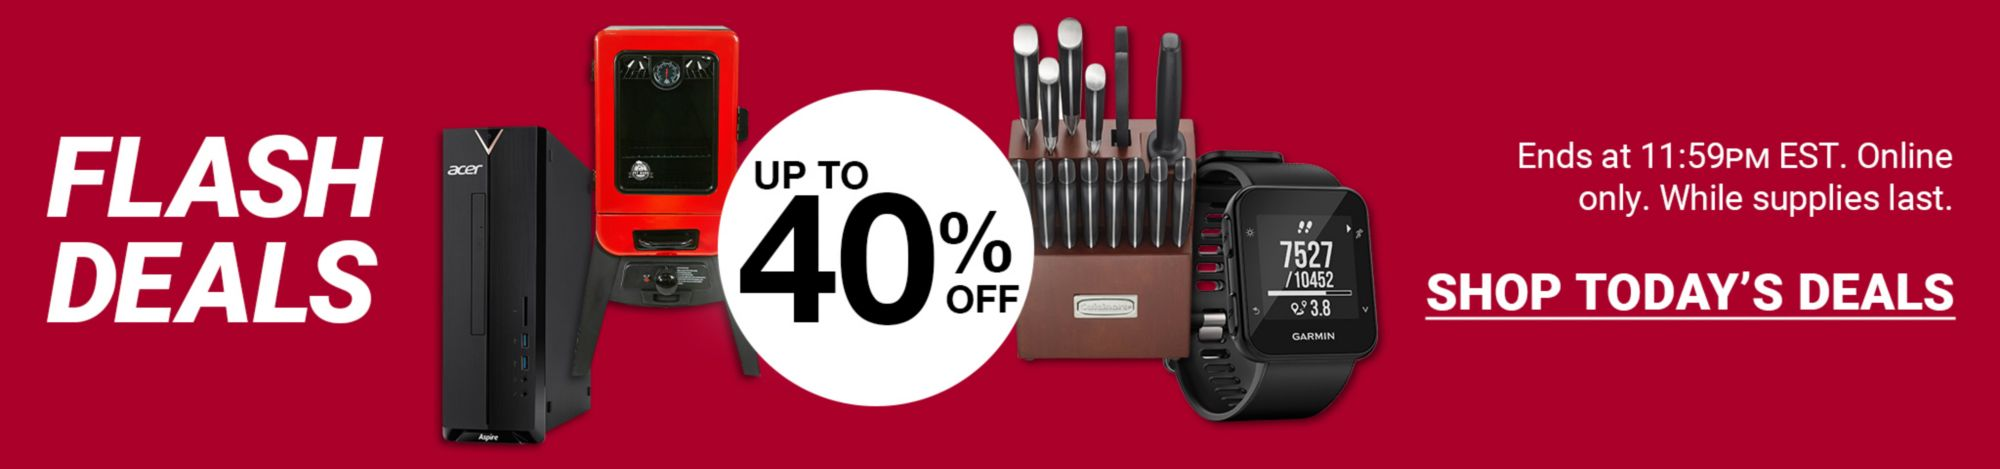 Flash Deals. Up to 40 percent off a variety of products. Click here to shop now. Ends at 11:59 PM EST. Online only. While supplies last.